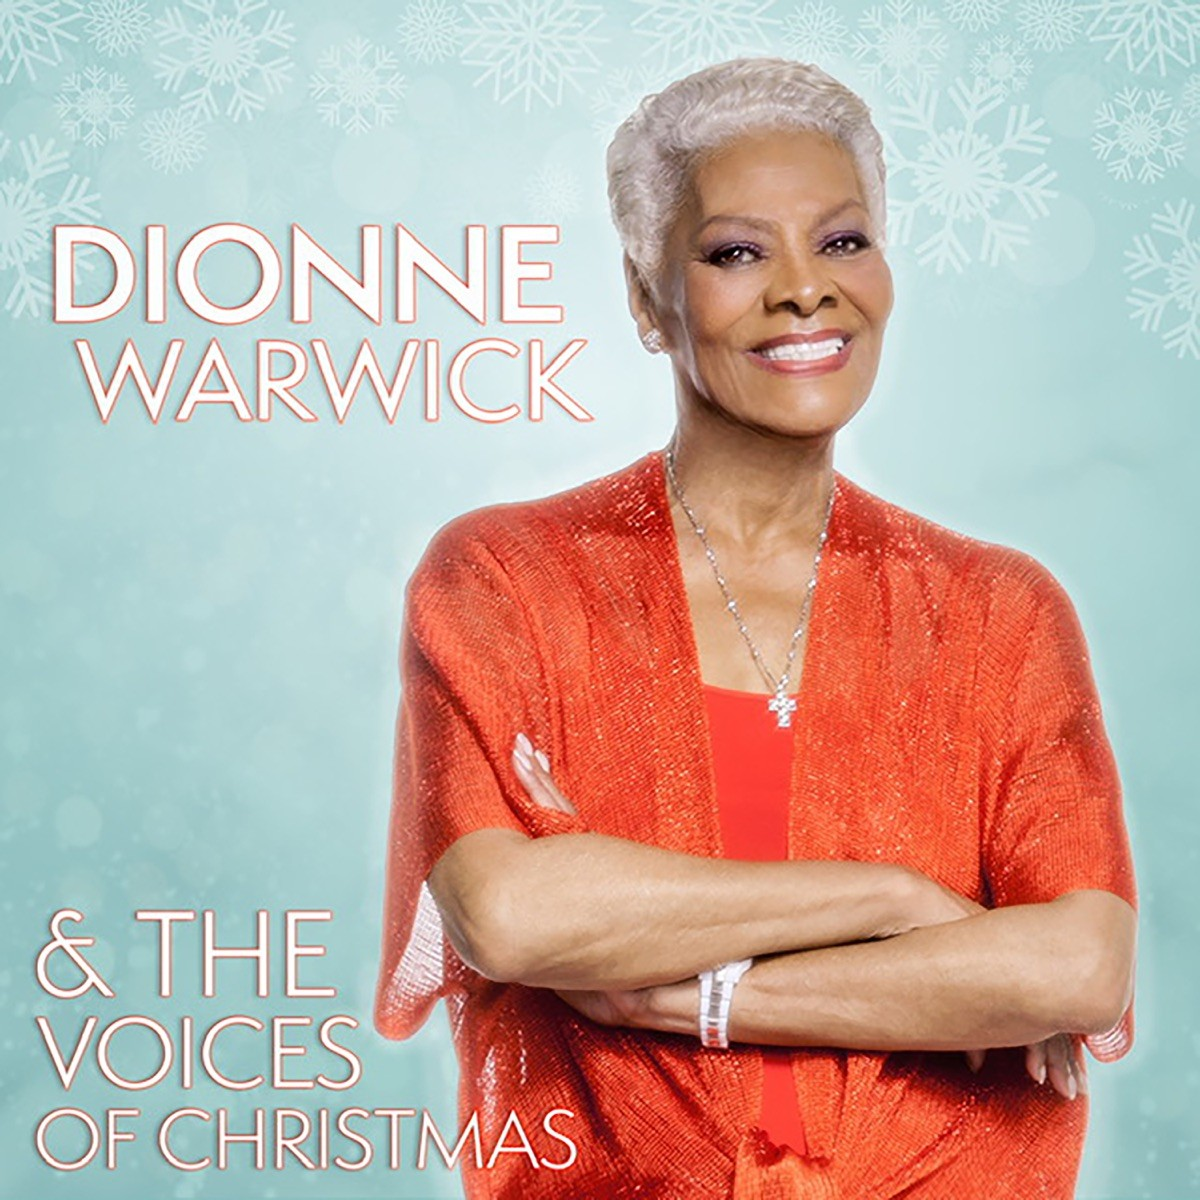 Dionne Warwick - The Voices of Christmas CD - 5053852974